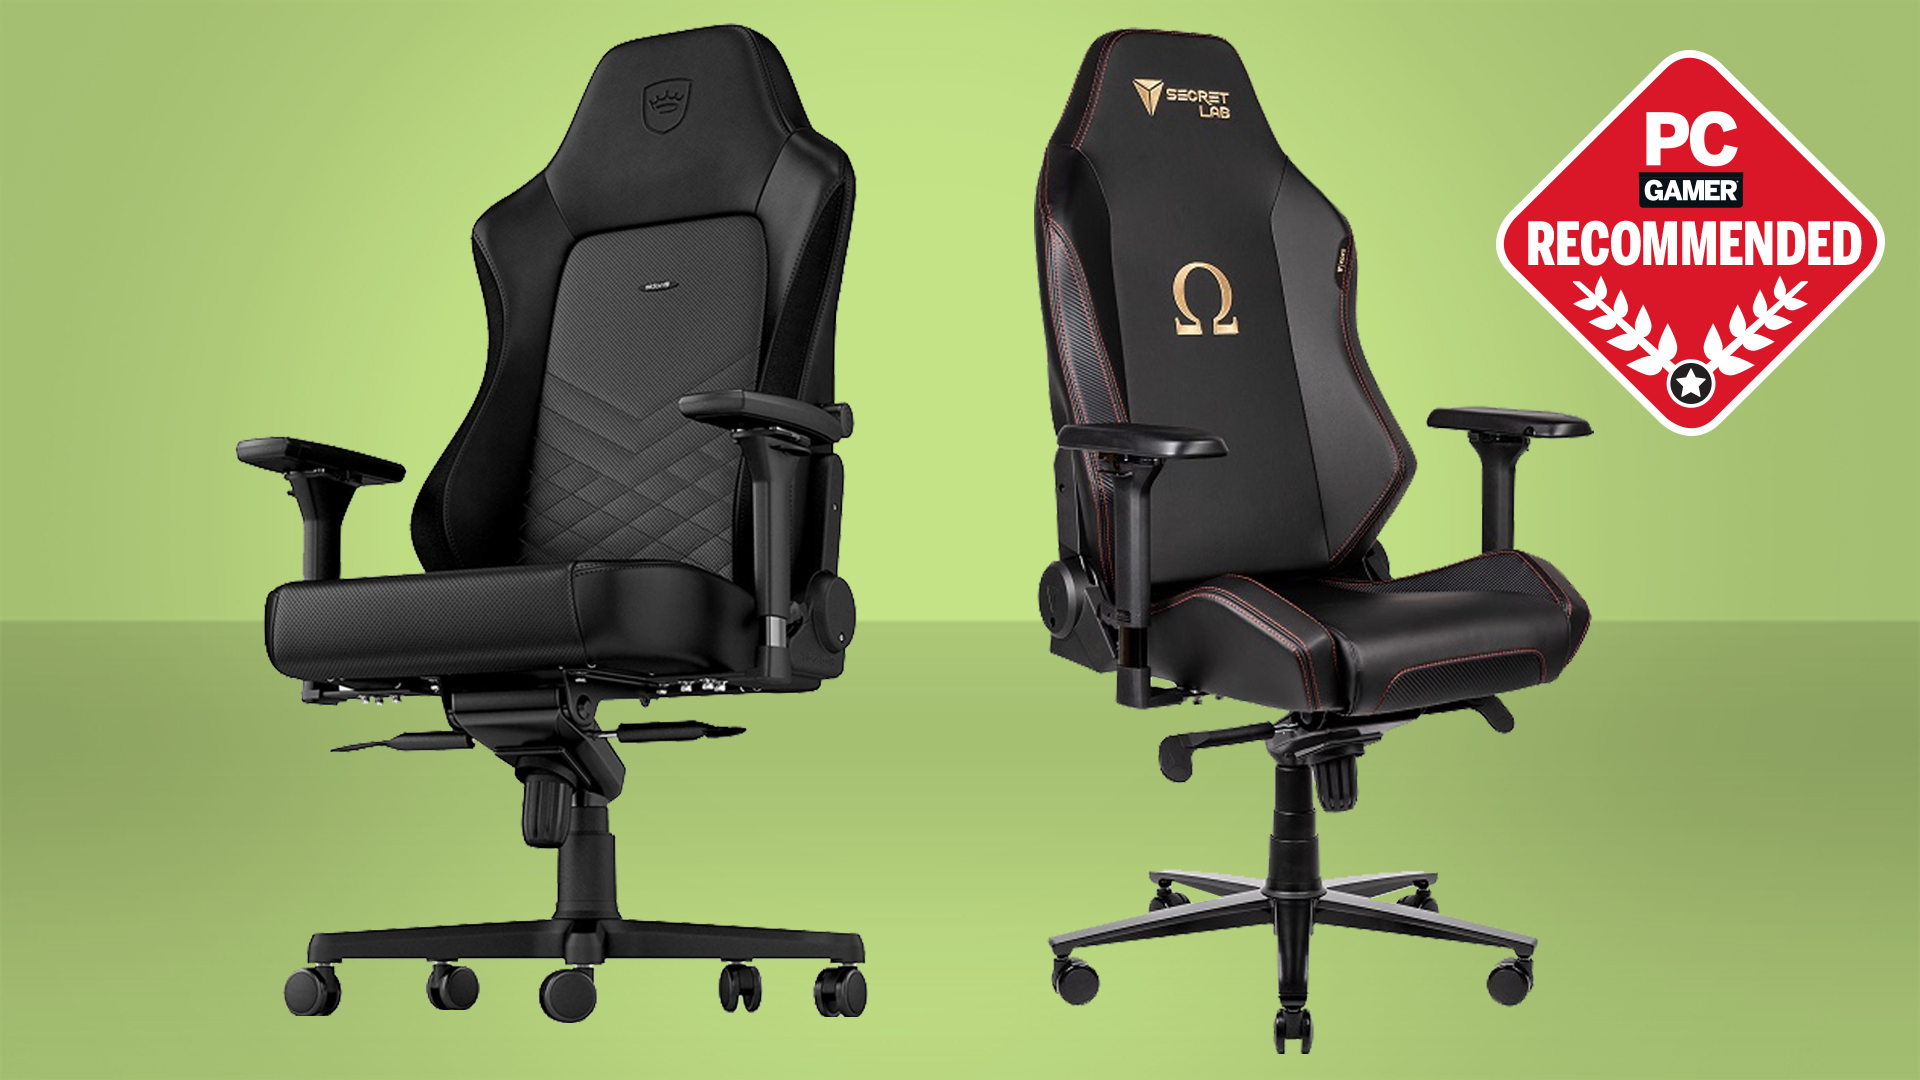 Wondrous The Best Gaming Chairs 2019 Pc Gamer Short Links Chair Design For Home Short Linksinfo